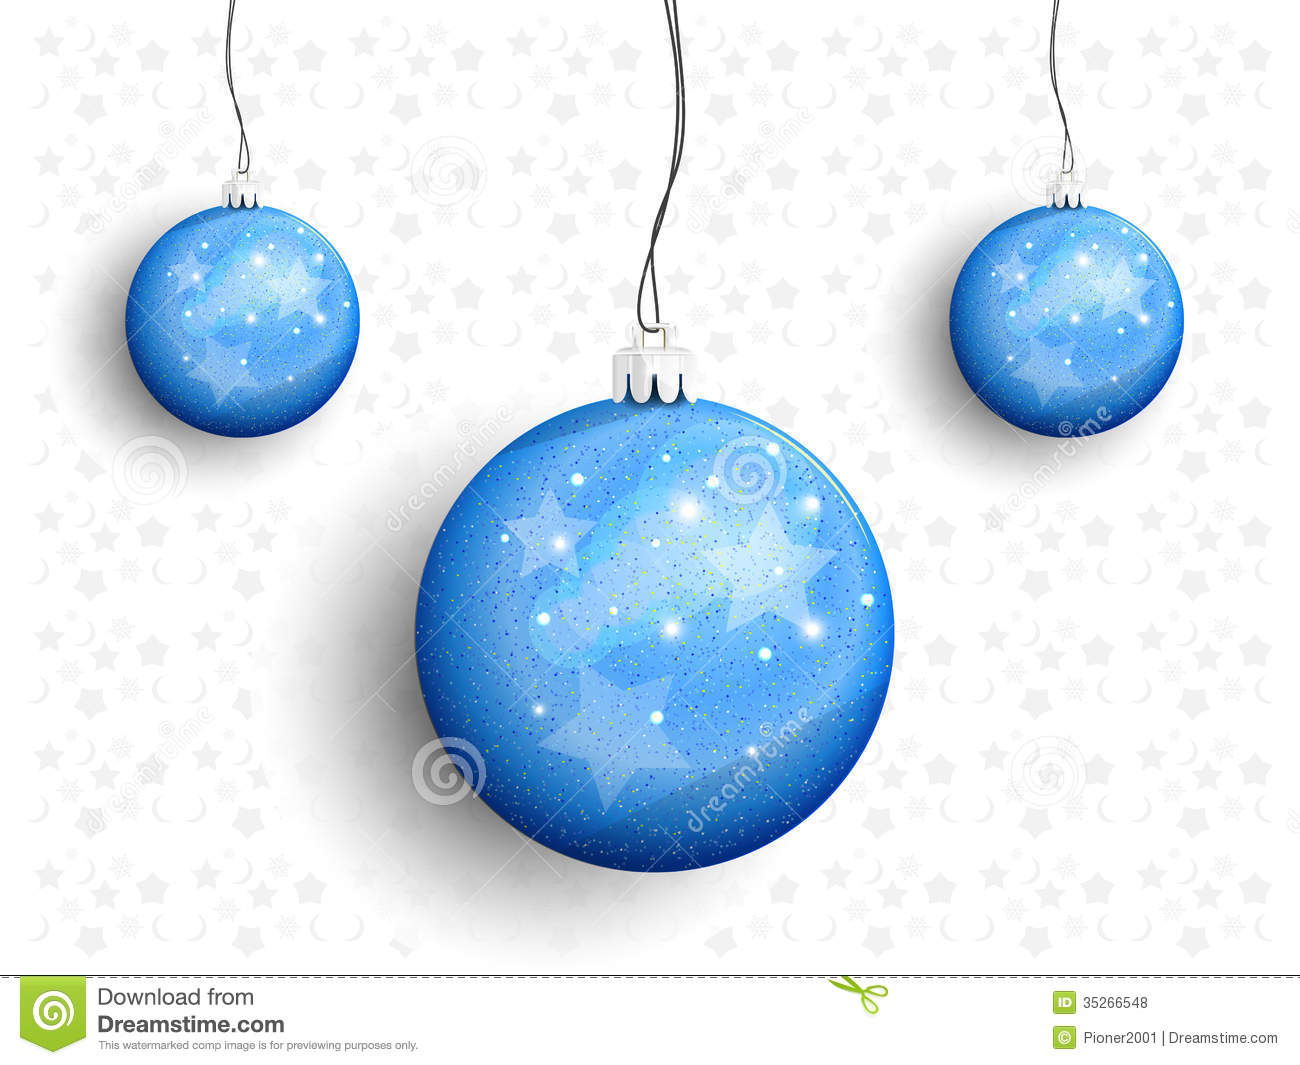 Christmas Balls On A String Royalty Free Stock Photos. Christmas Decorating Cookies Games. Christmas Centerpiece Ideas For Banquet Tables. Christmas Trees Decorated Professionally. Christmas Lights For Sale Online Canada. Christmas Decorations To Make Early Years. Giant Inflatable Christmas Decorations. Decorations Christmas In Germany. Clear Glass Christmas Ornaments Australia